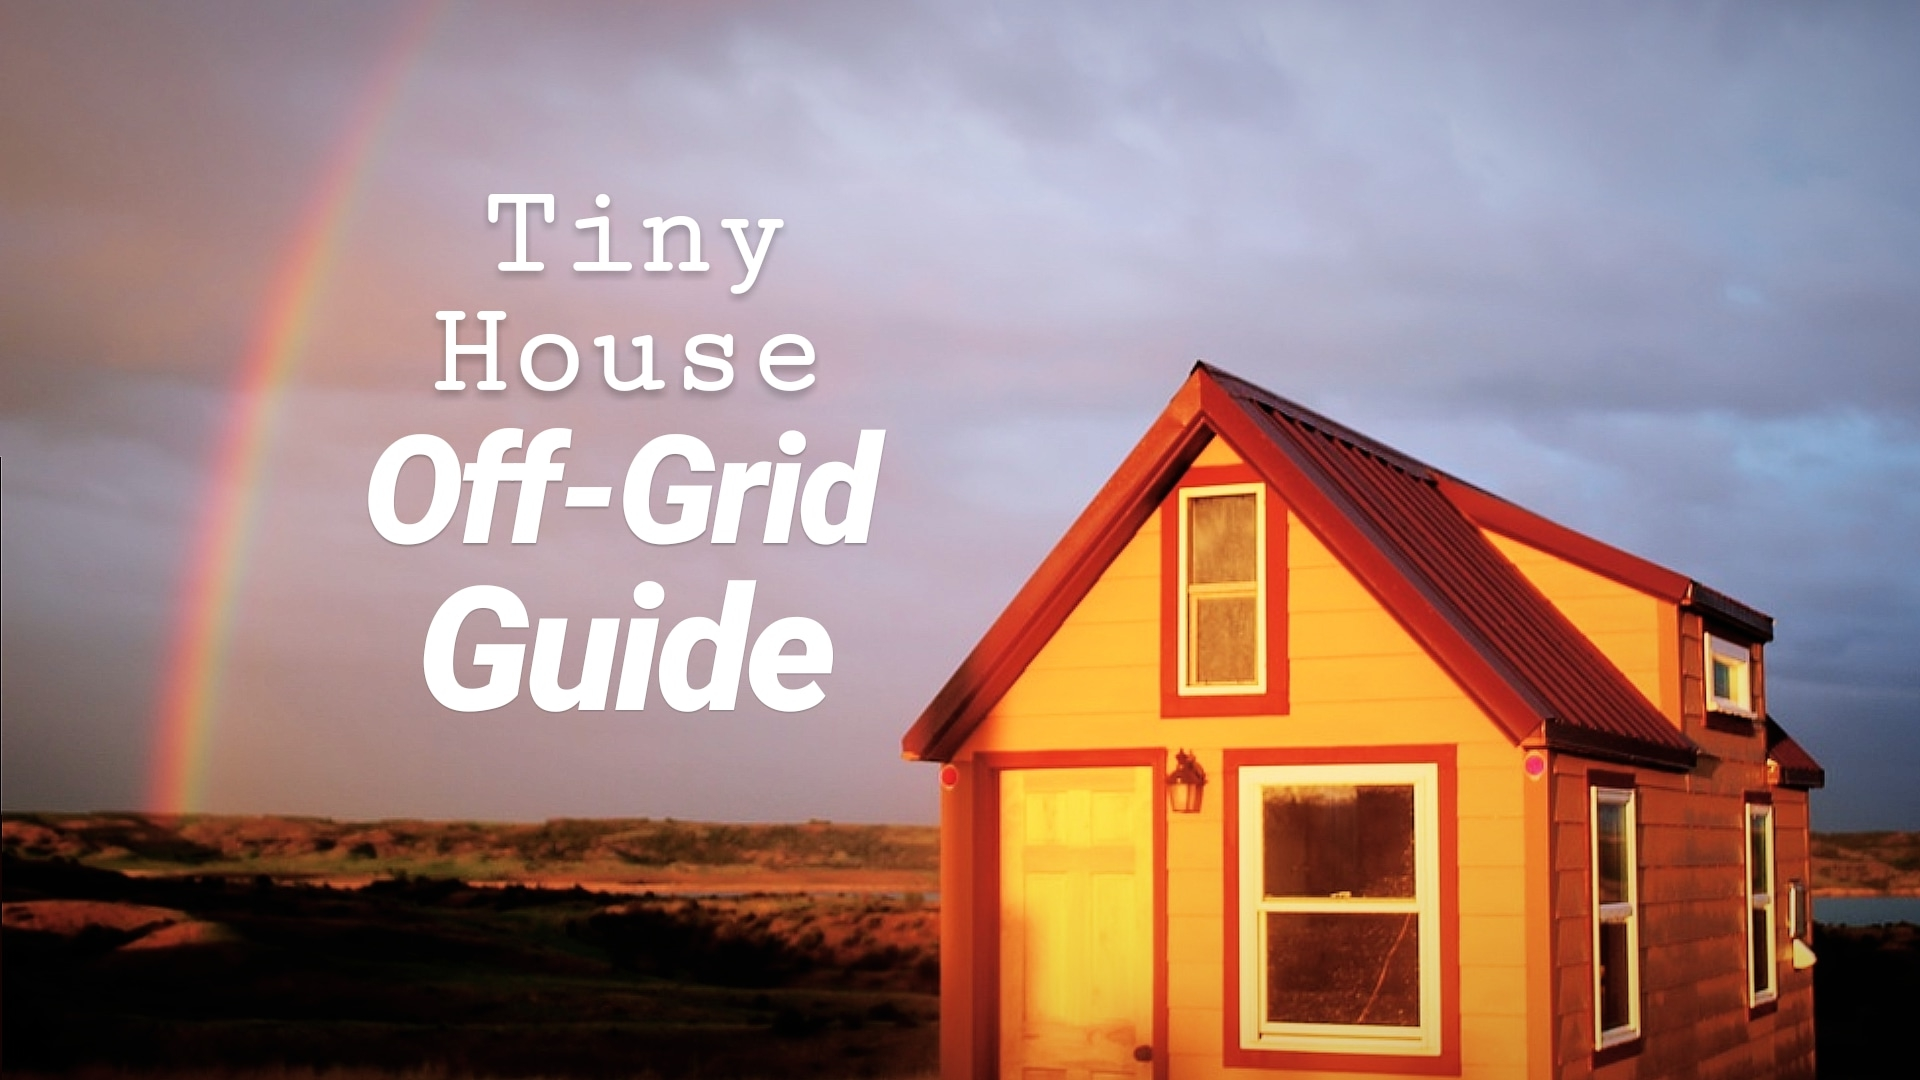 tiny-house-off-grid-guide.jpg